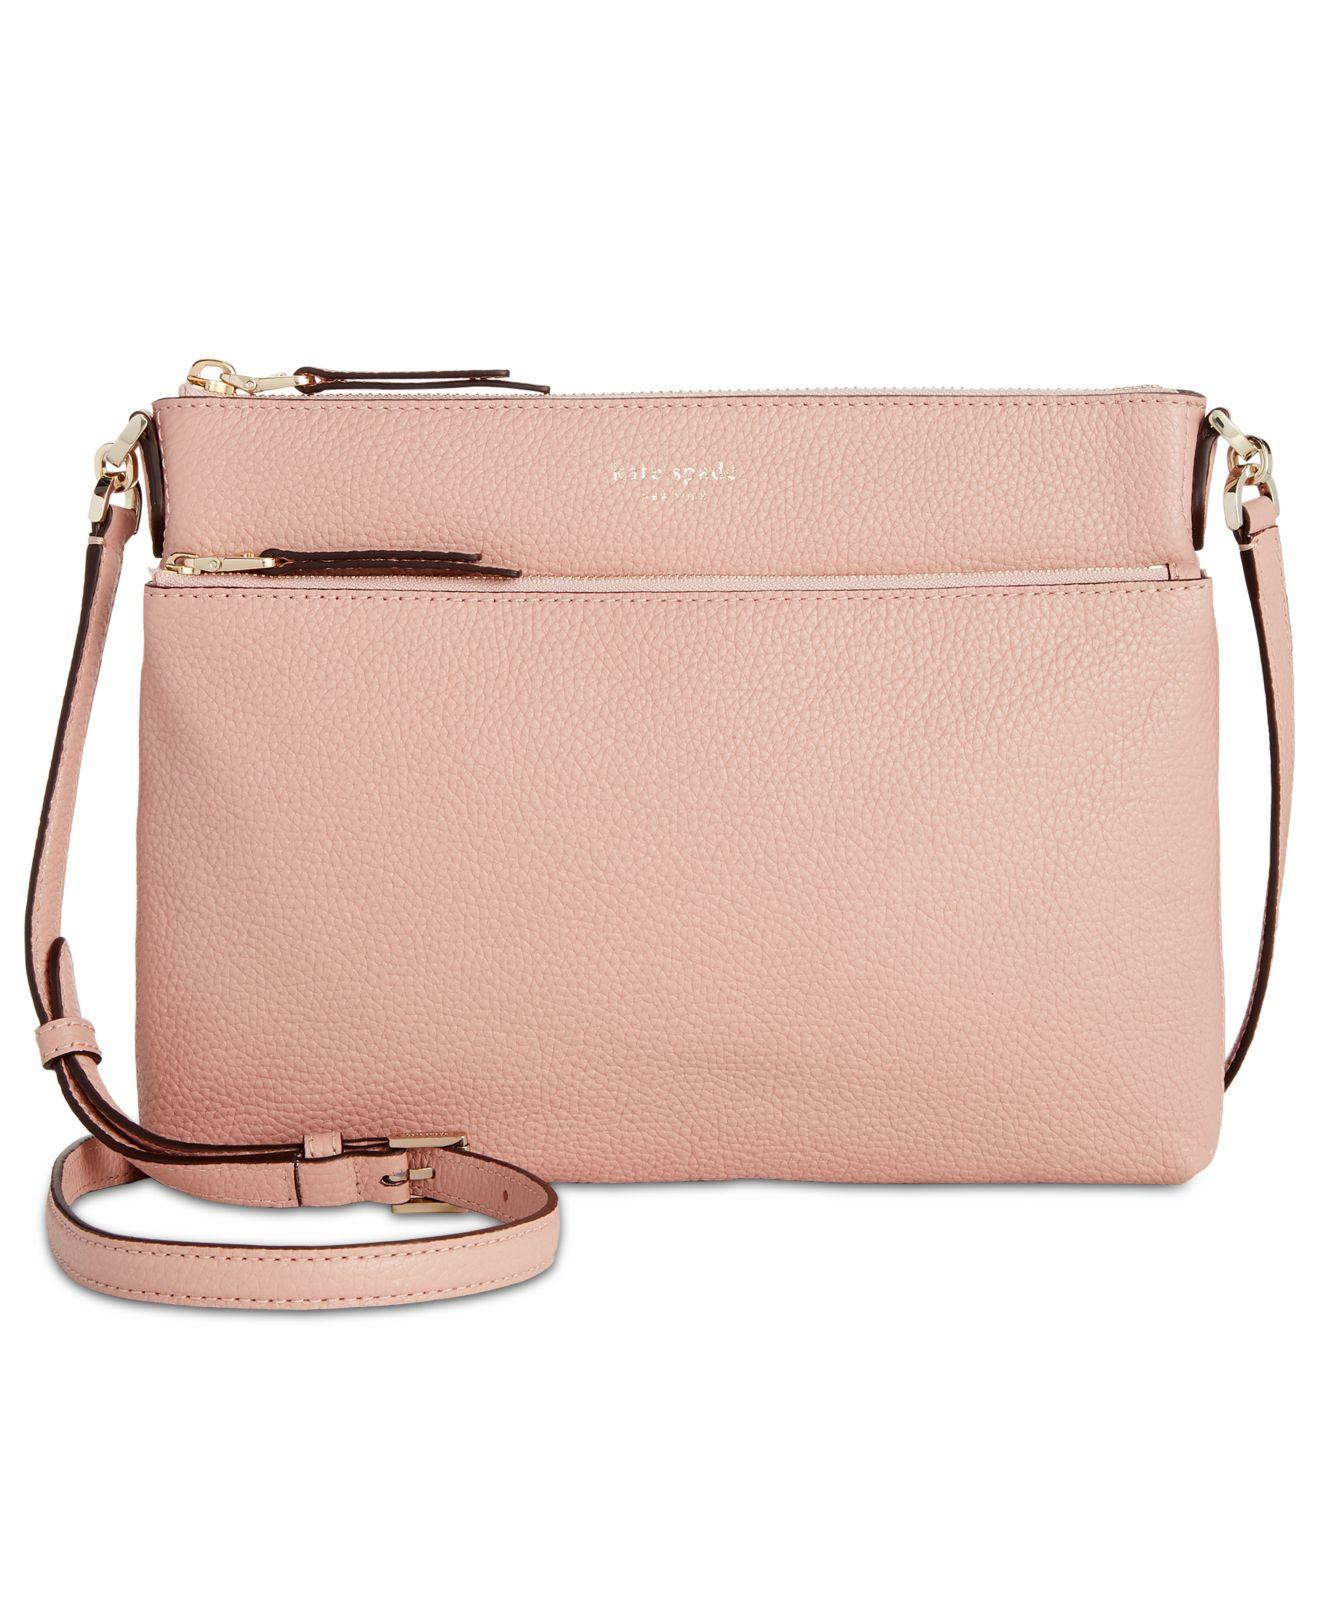 65e3cb05958d Lyst - Kate Spade Polly Crossbody in Pink